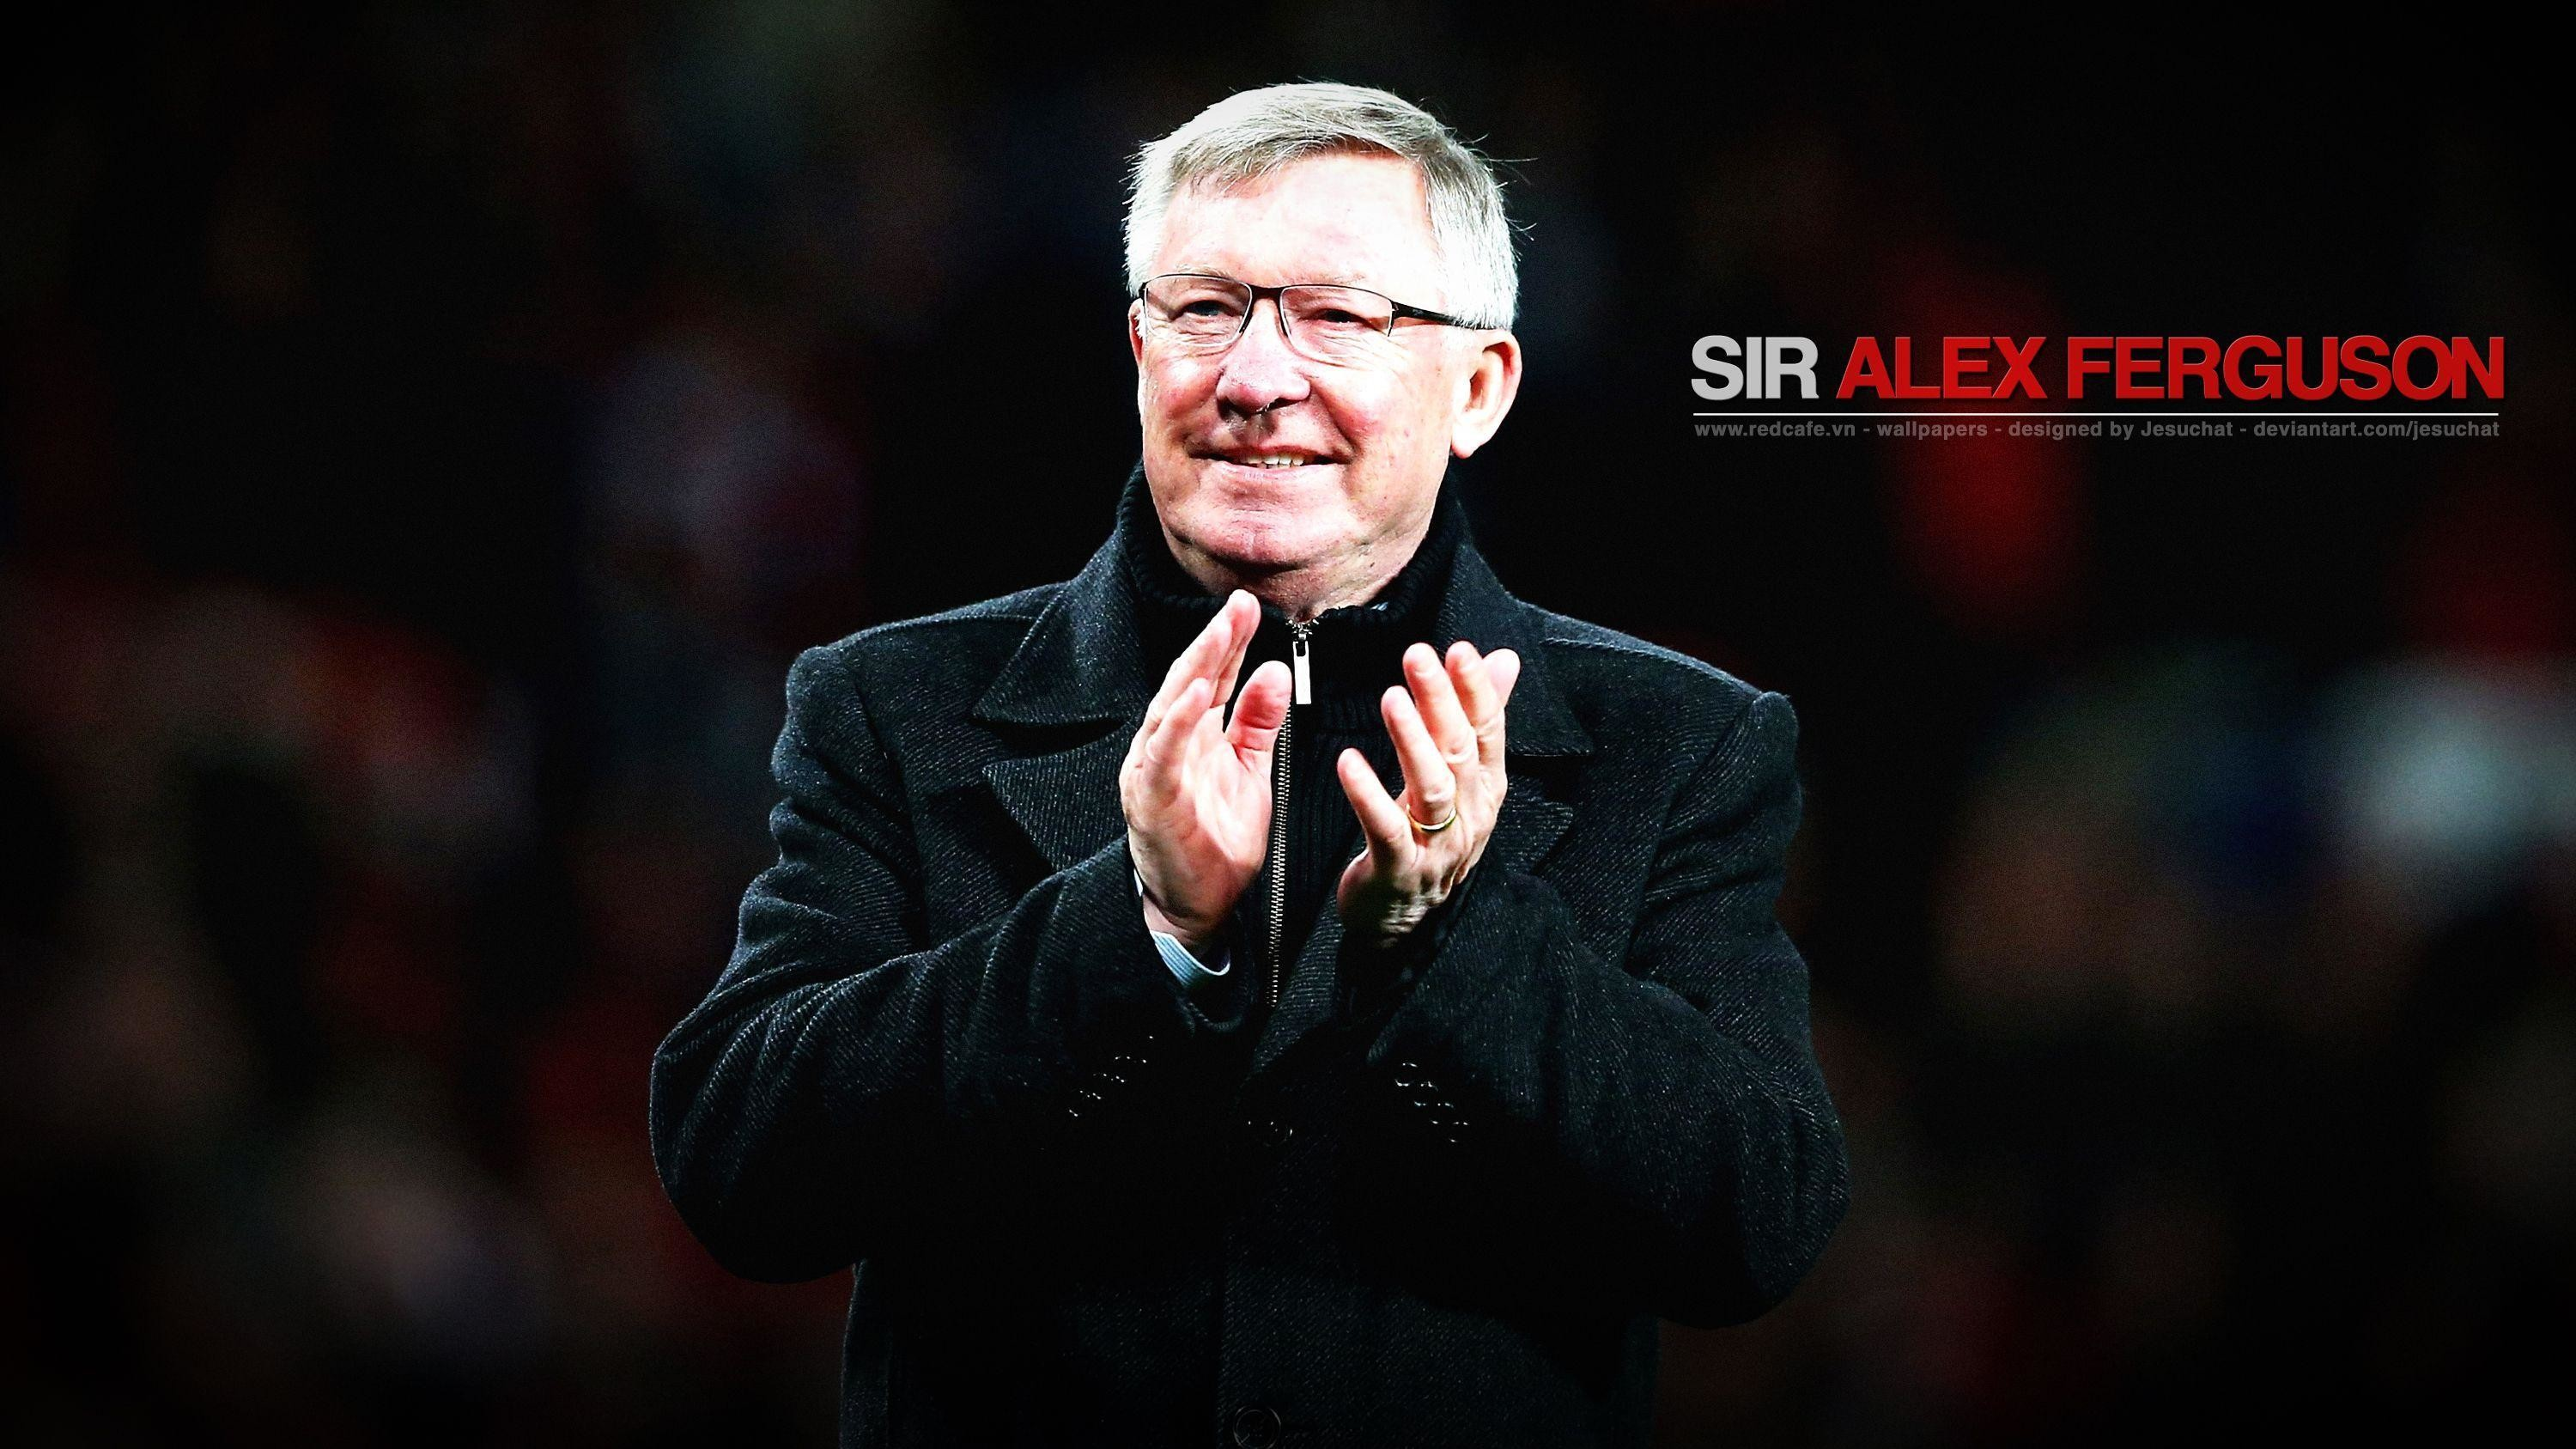 3000x1687 Sir Alex Ferguson Wallpapers by Jesuchat on DeviantArt